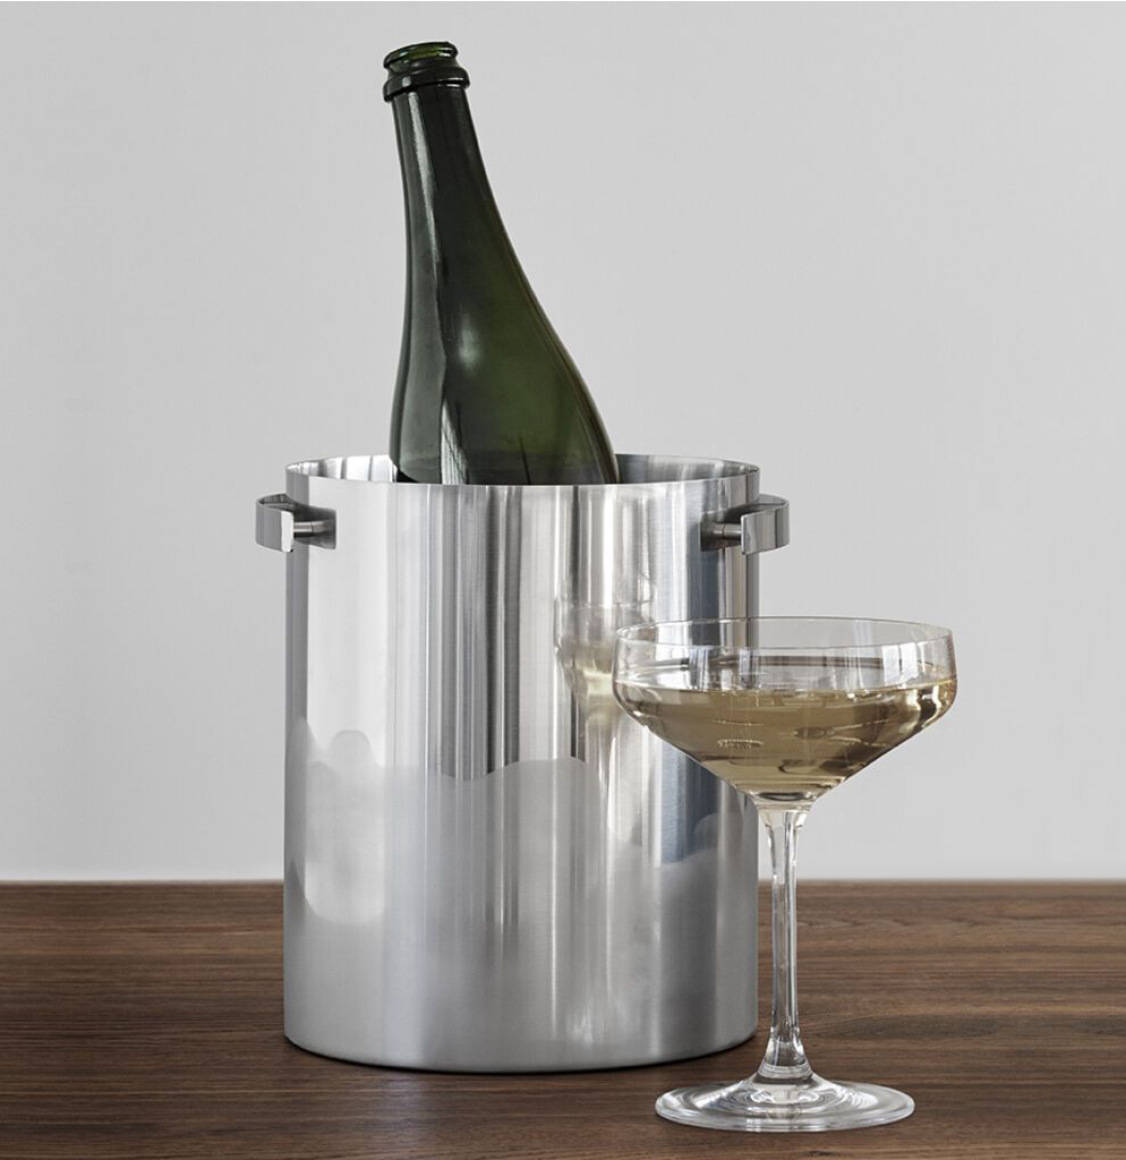 Stelton Stainless Steel Champagne Cooler